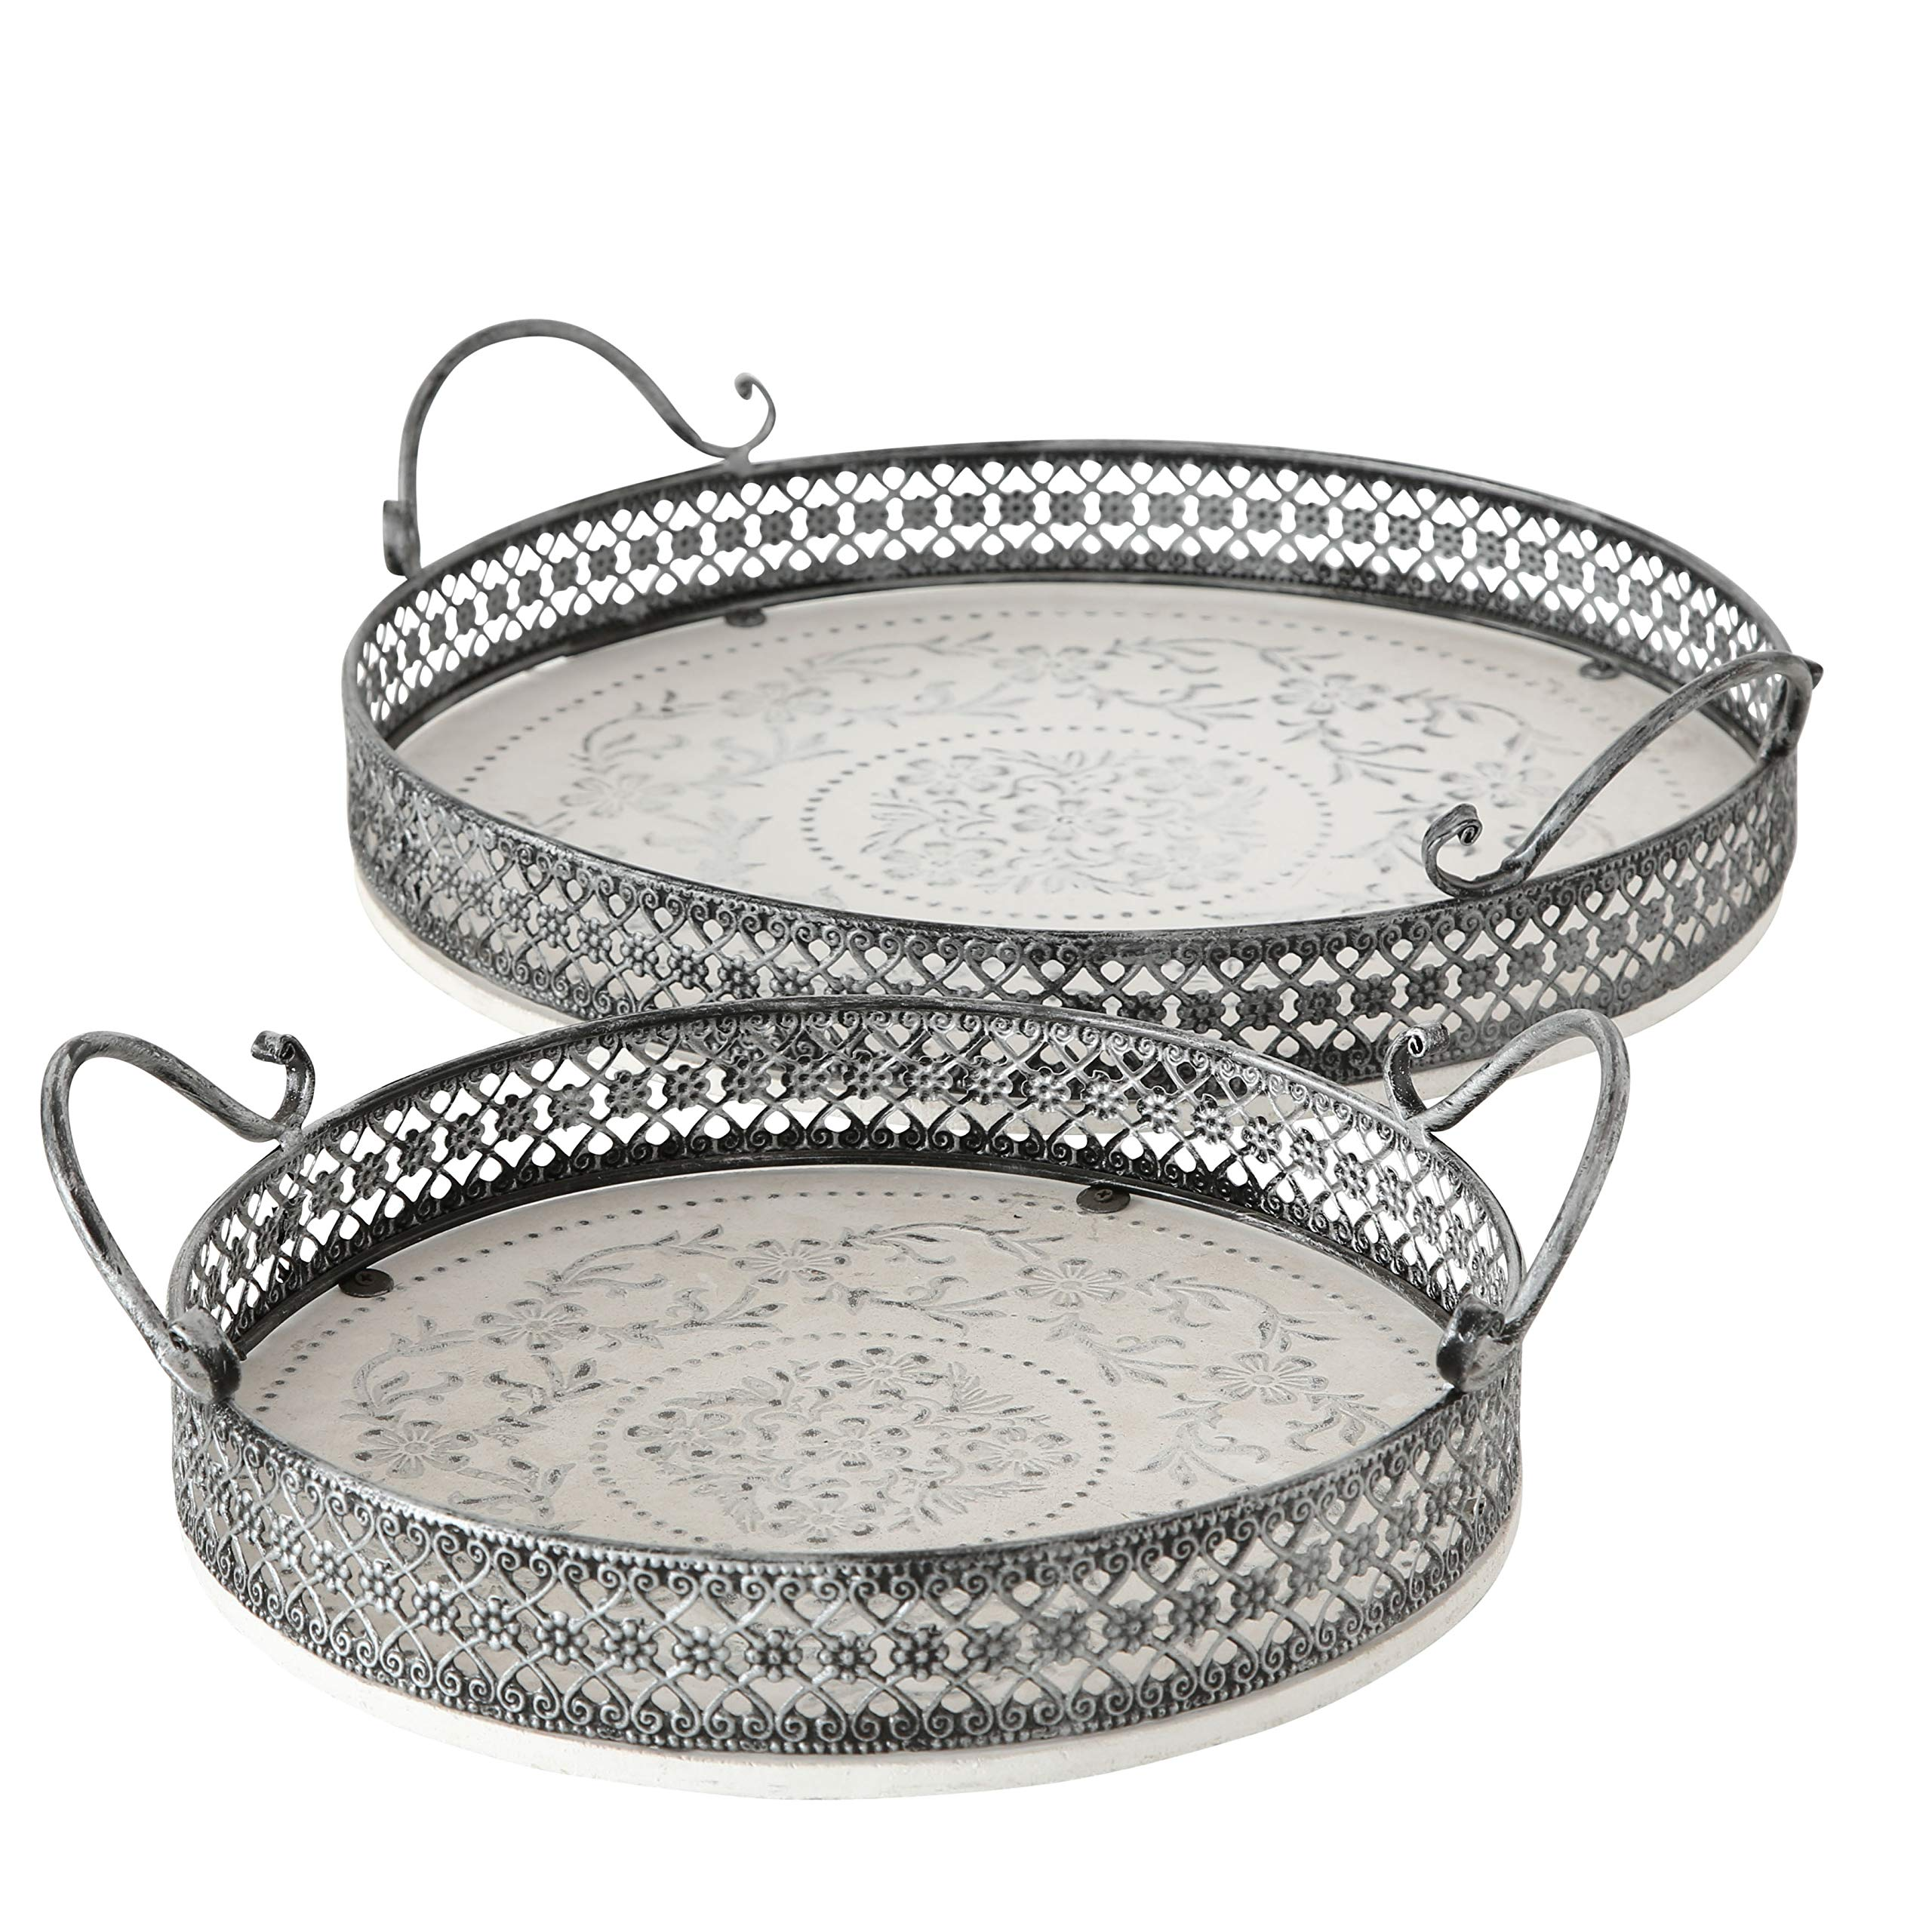 WHW Whole House Worlds Stockbridge Round Trays, Set of 2, Stenciled Floral Roundels, Rustic White with Gray Accents, Detailed Vintage Style Metal Work Rims, 14 1/2 and 11 Inches Diameter